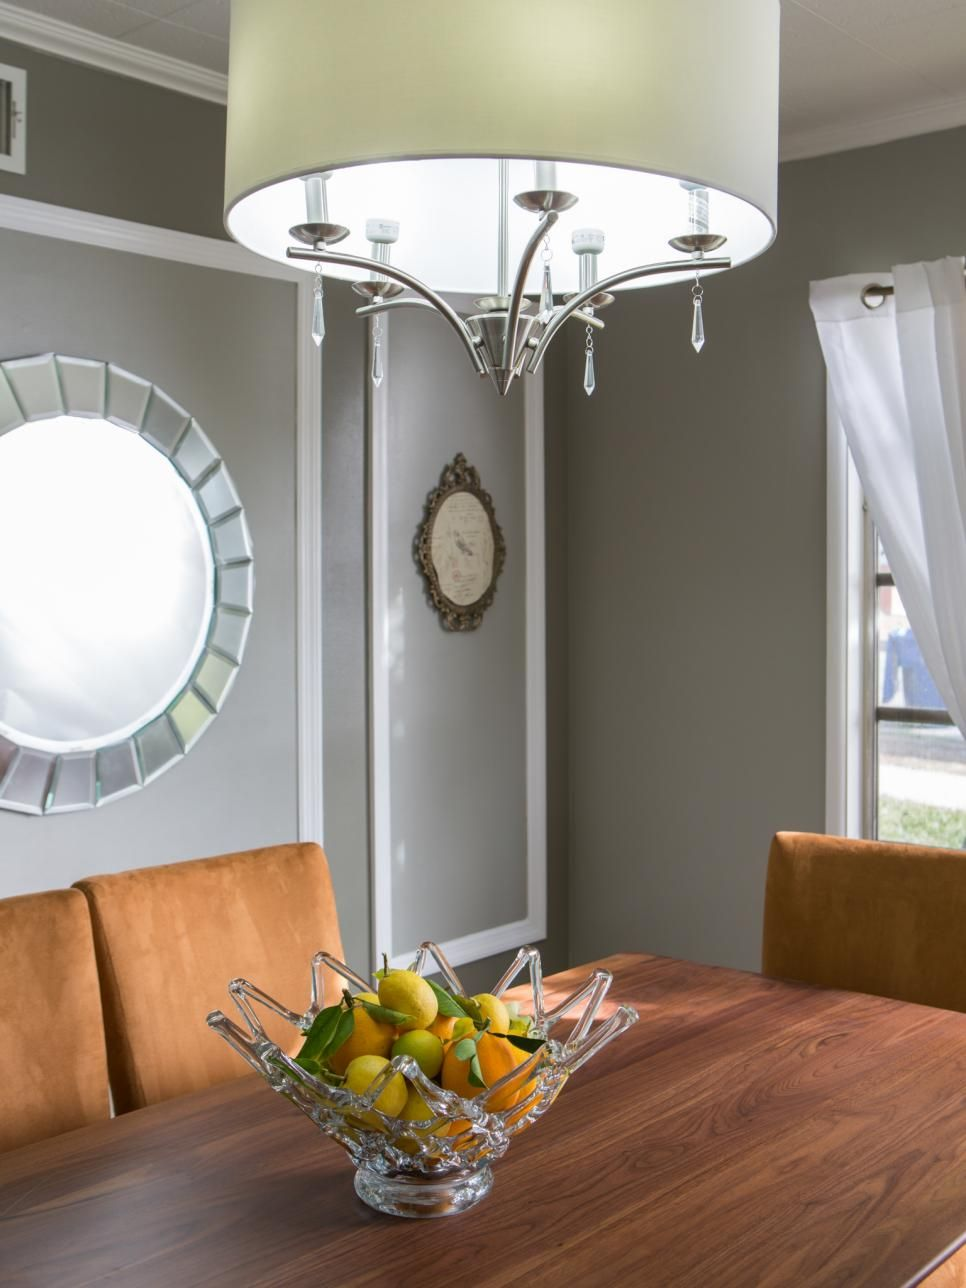 Contemporary Chandeliers For Dining Room Glamorous Gray Dining Room With Contemporary Chandelier  Decor  Pinterest Design Inspiration